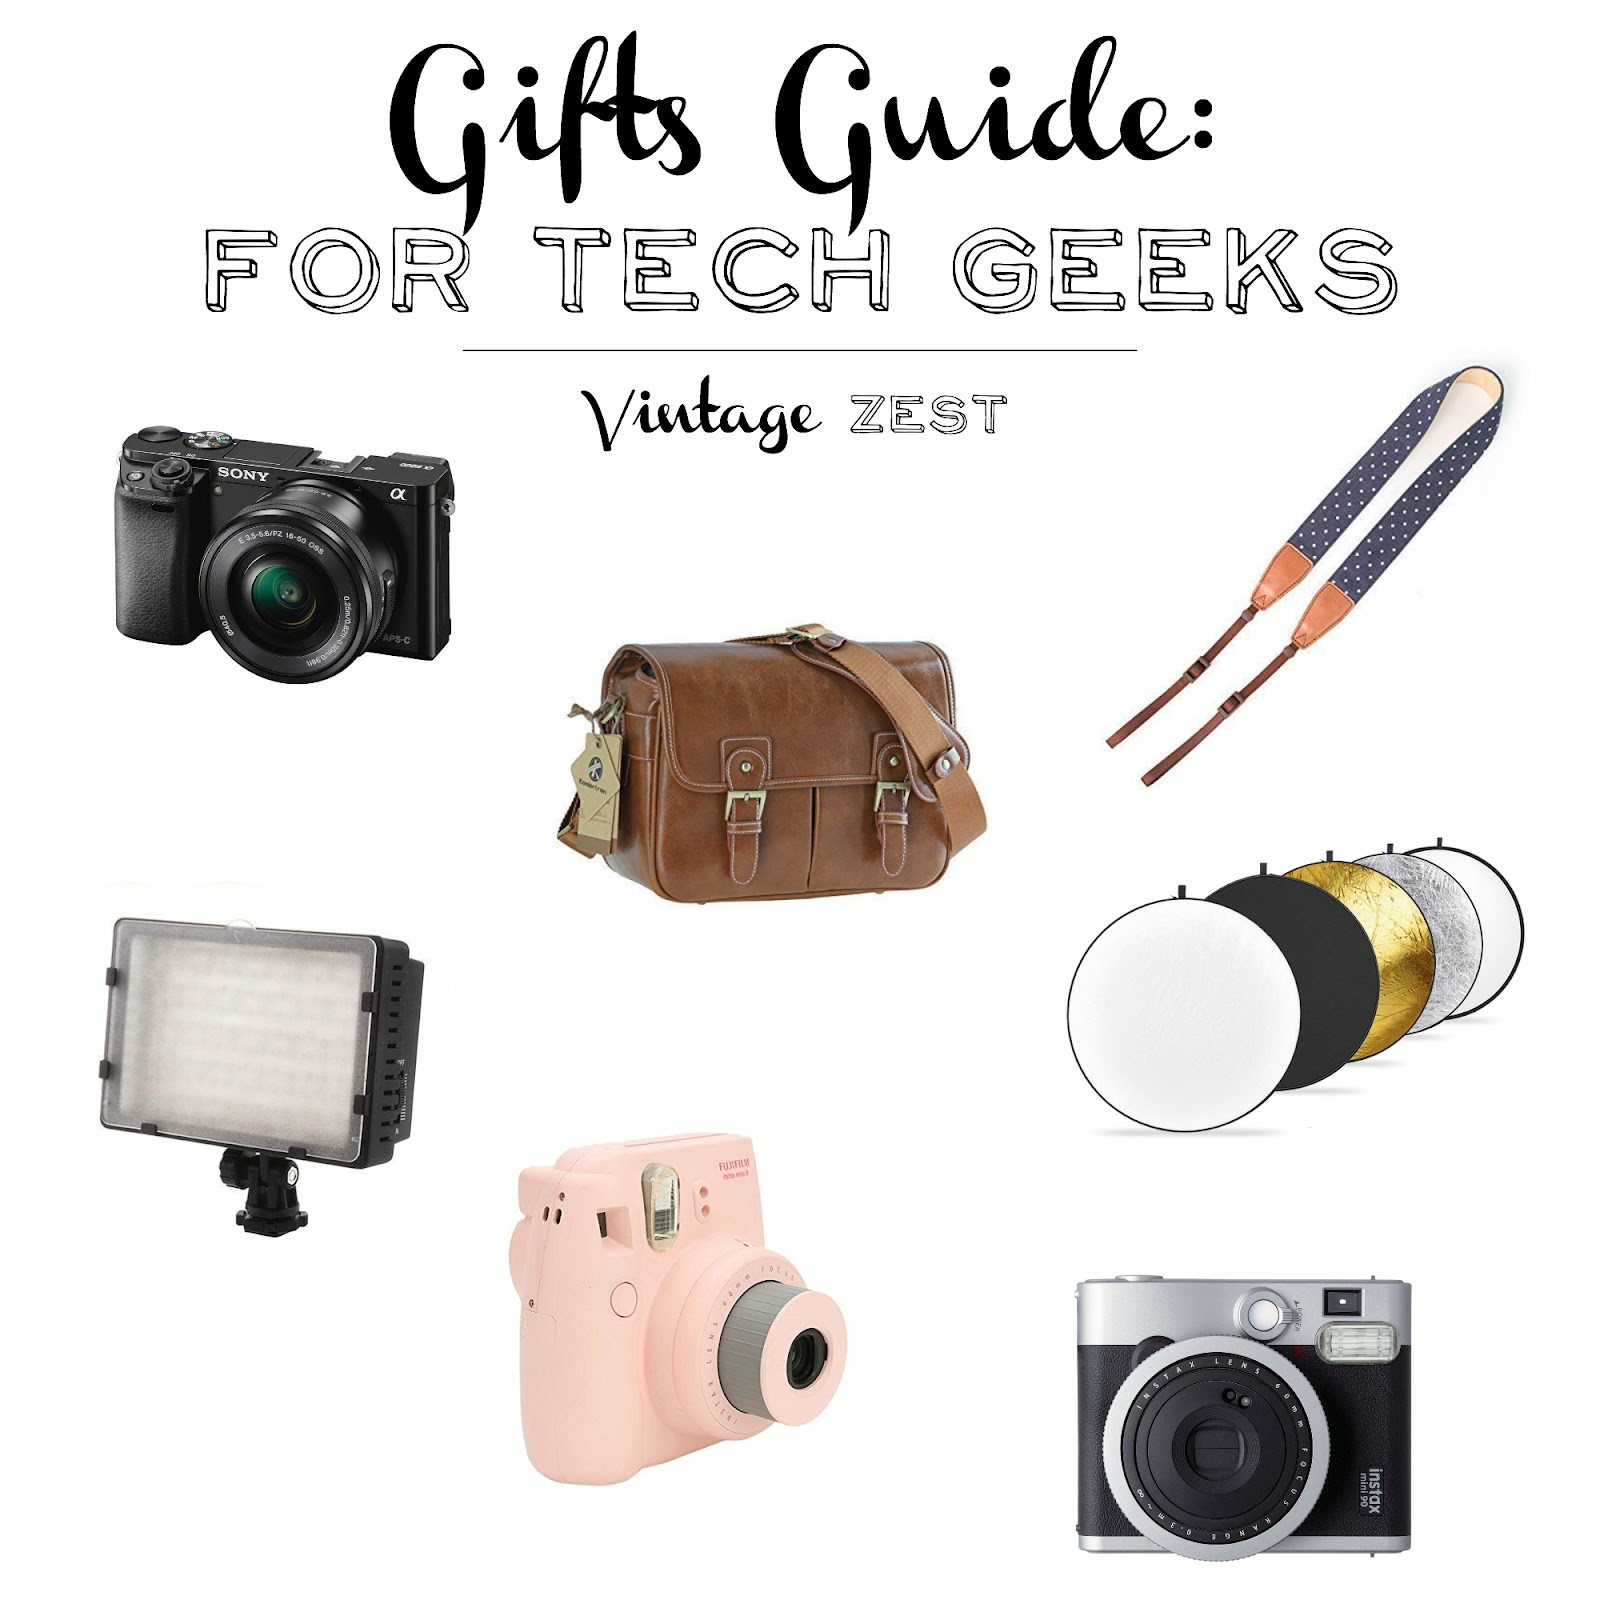 Gift Guide for Tech Geeks on Diane's Vintage Zest!